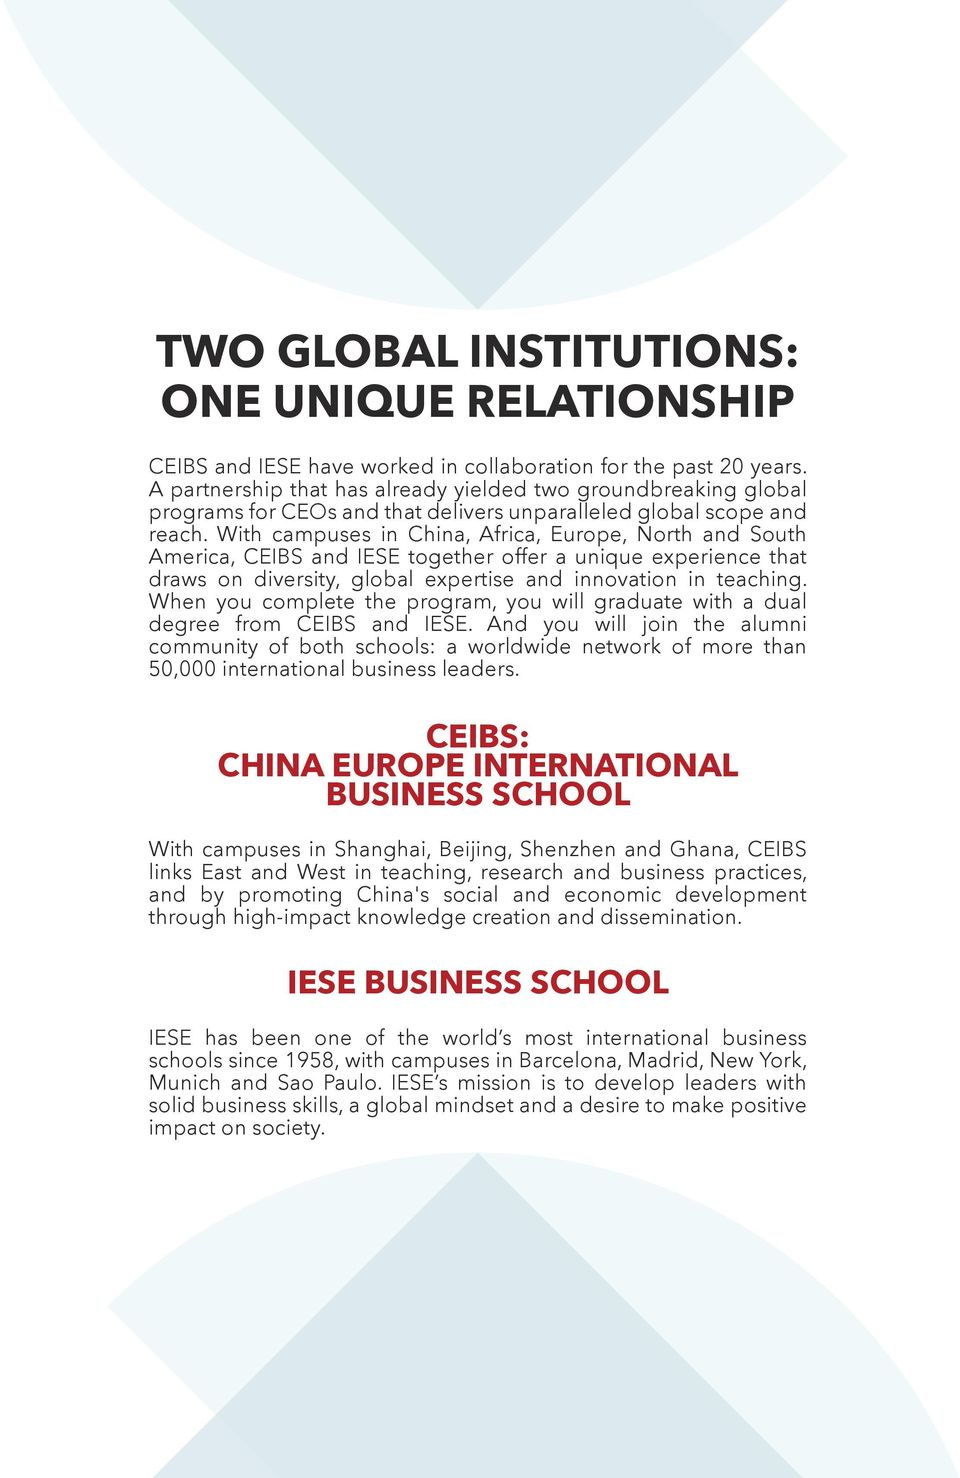 With campuses in China, Africa, Europe, North and South America, CEIBS and IESE together offer a unique experience that draws on diversity, global expertise and innovation in teaching.